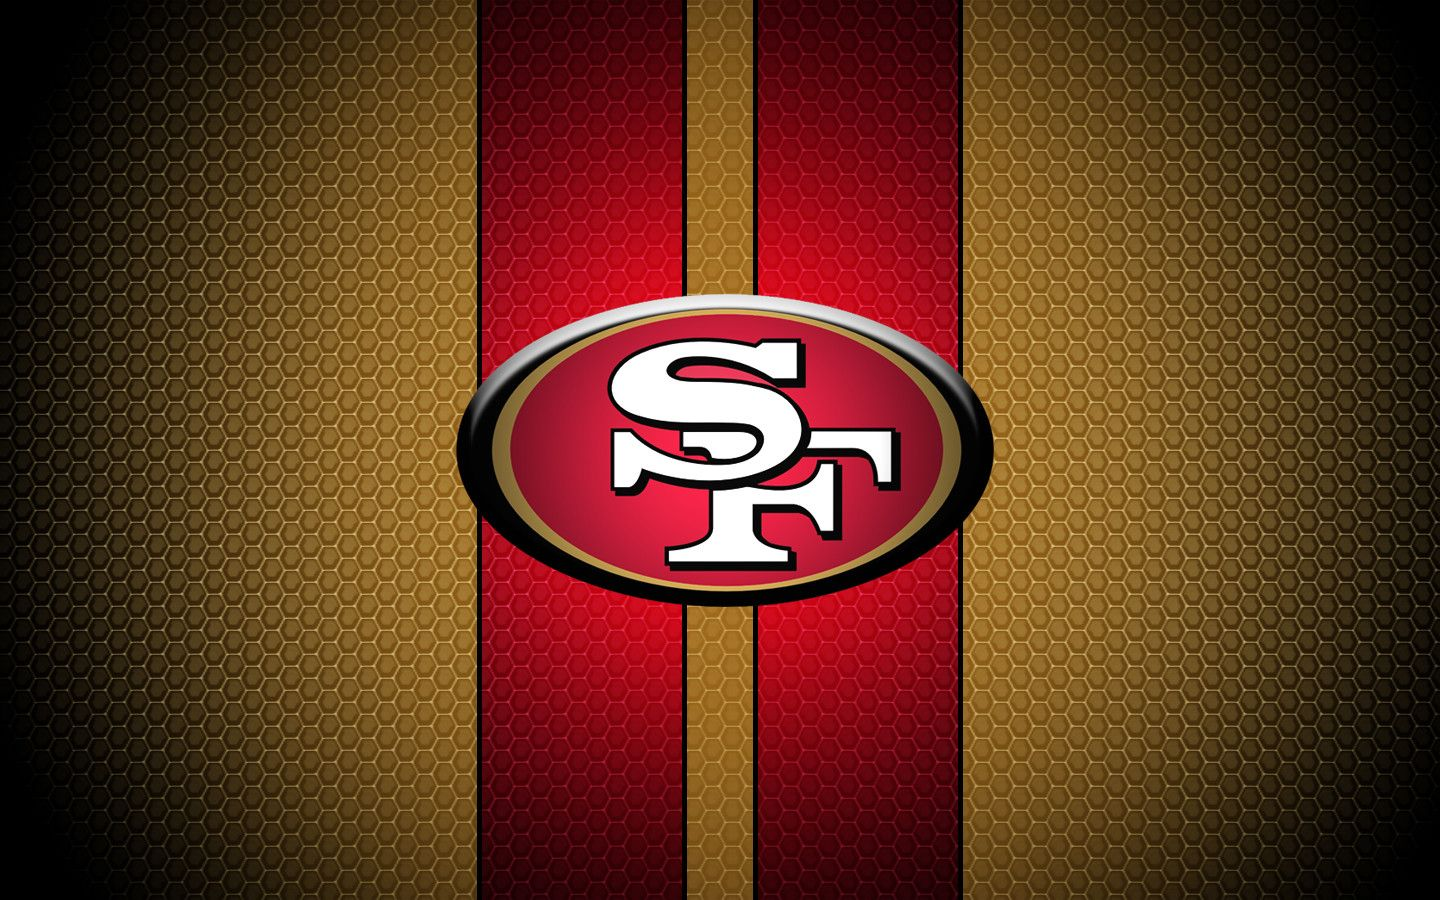 San Francisco 49ers Wallpapers HD Backgrounds | WallpapersIn4k net